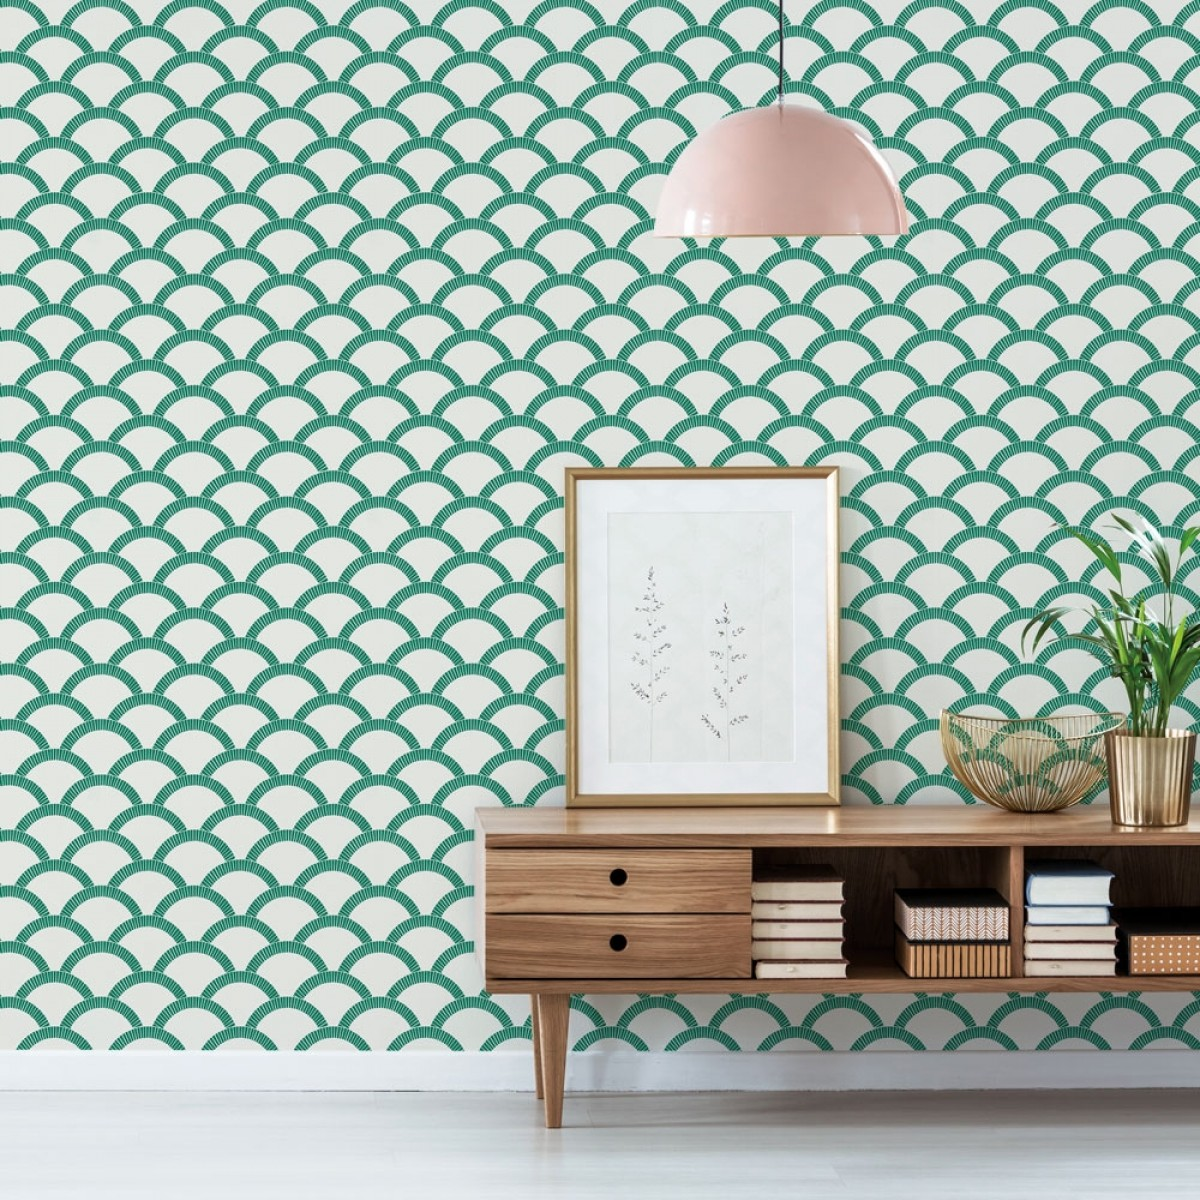 24 Modern Wallpaper Designs Guaranteed to Transform Your Space